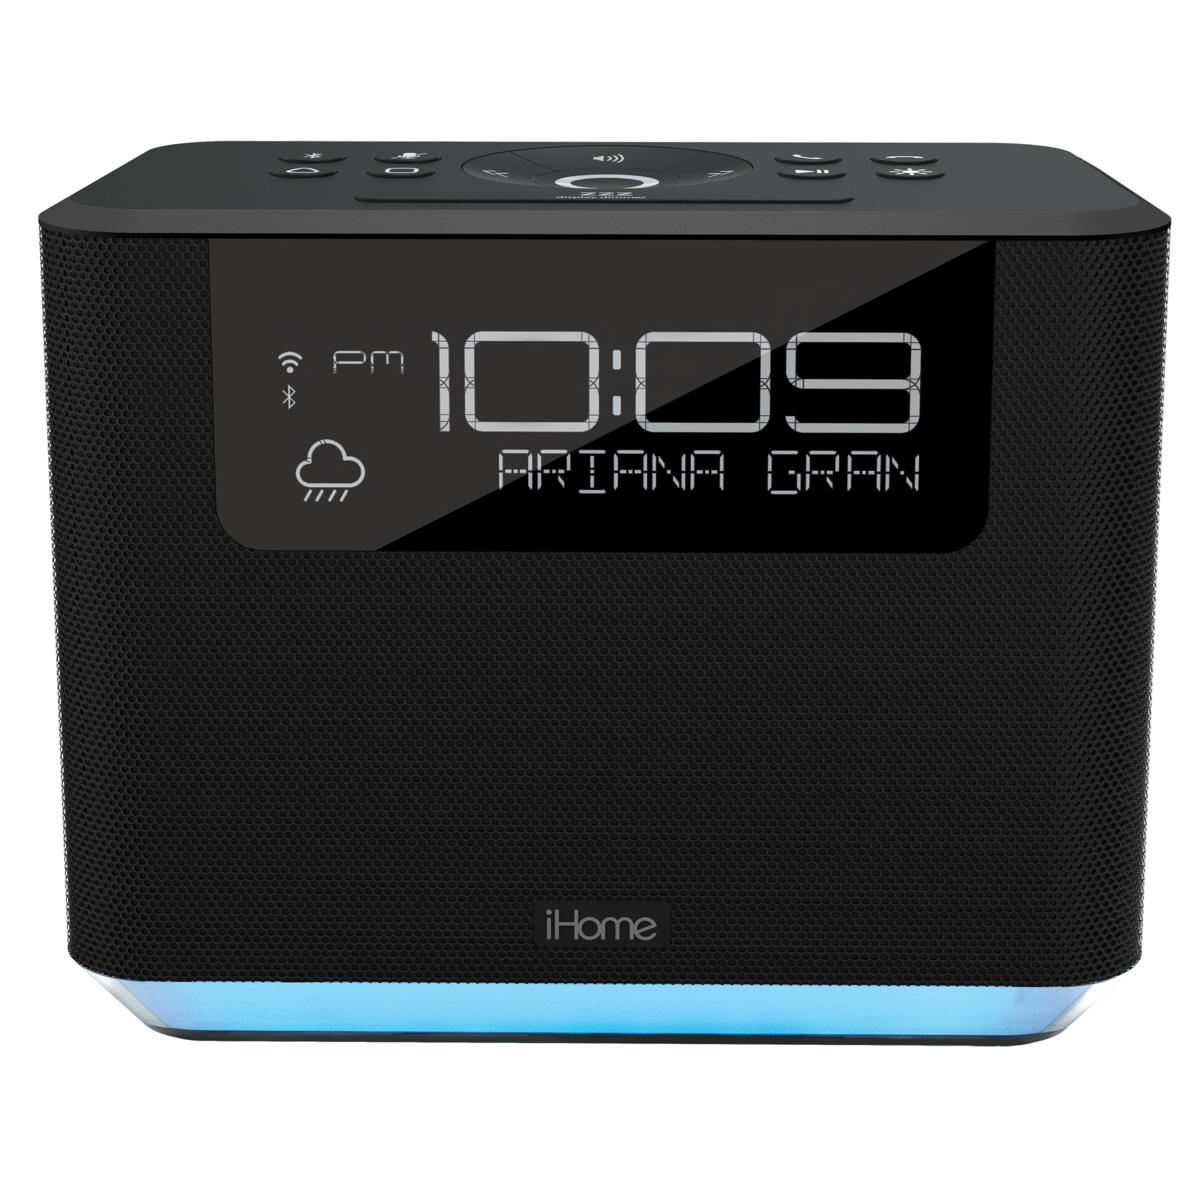 iHome iAVS16 Bedside Clock System Featuring Far Field Alexa Voice Service with Bluetooth and USB Charging